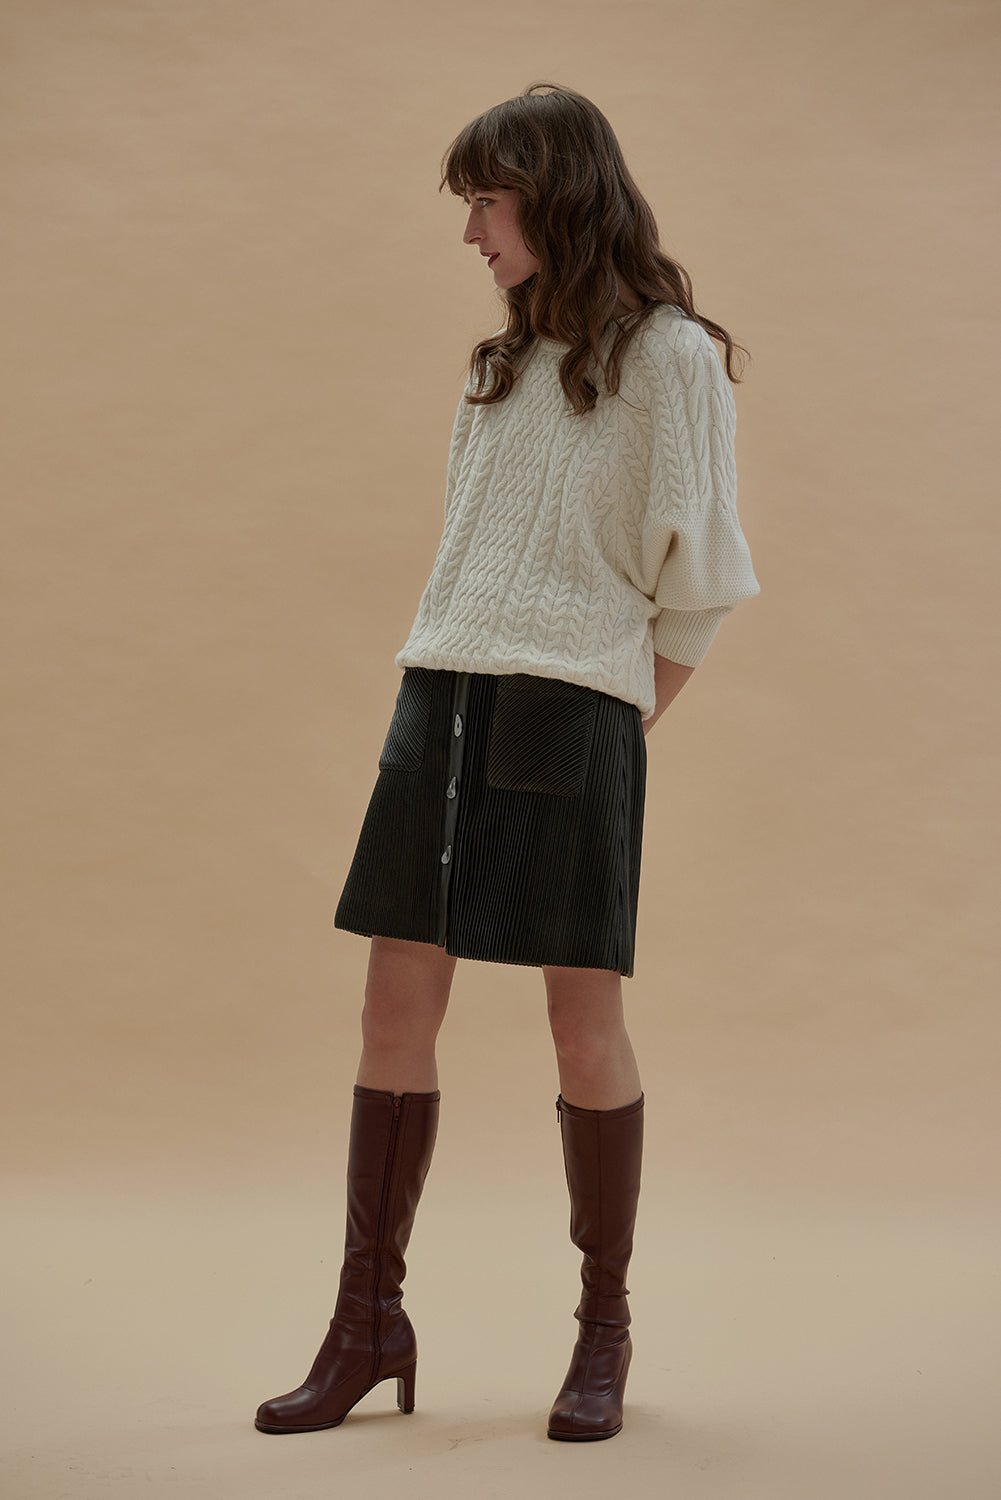 Sunday Girl Merino Wool Sweater-Cream